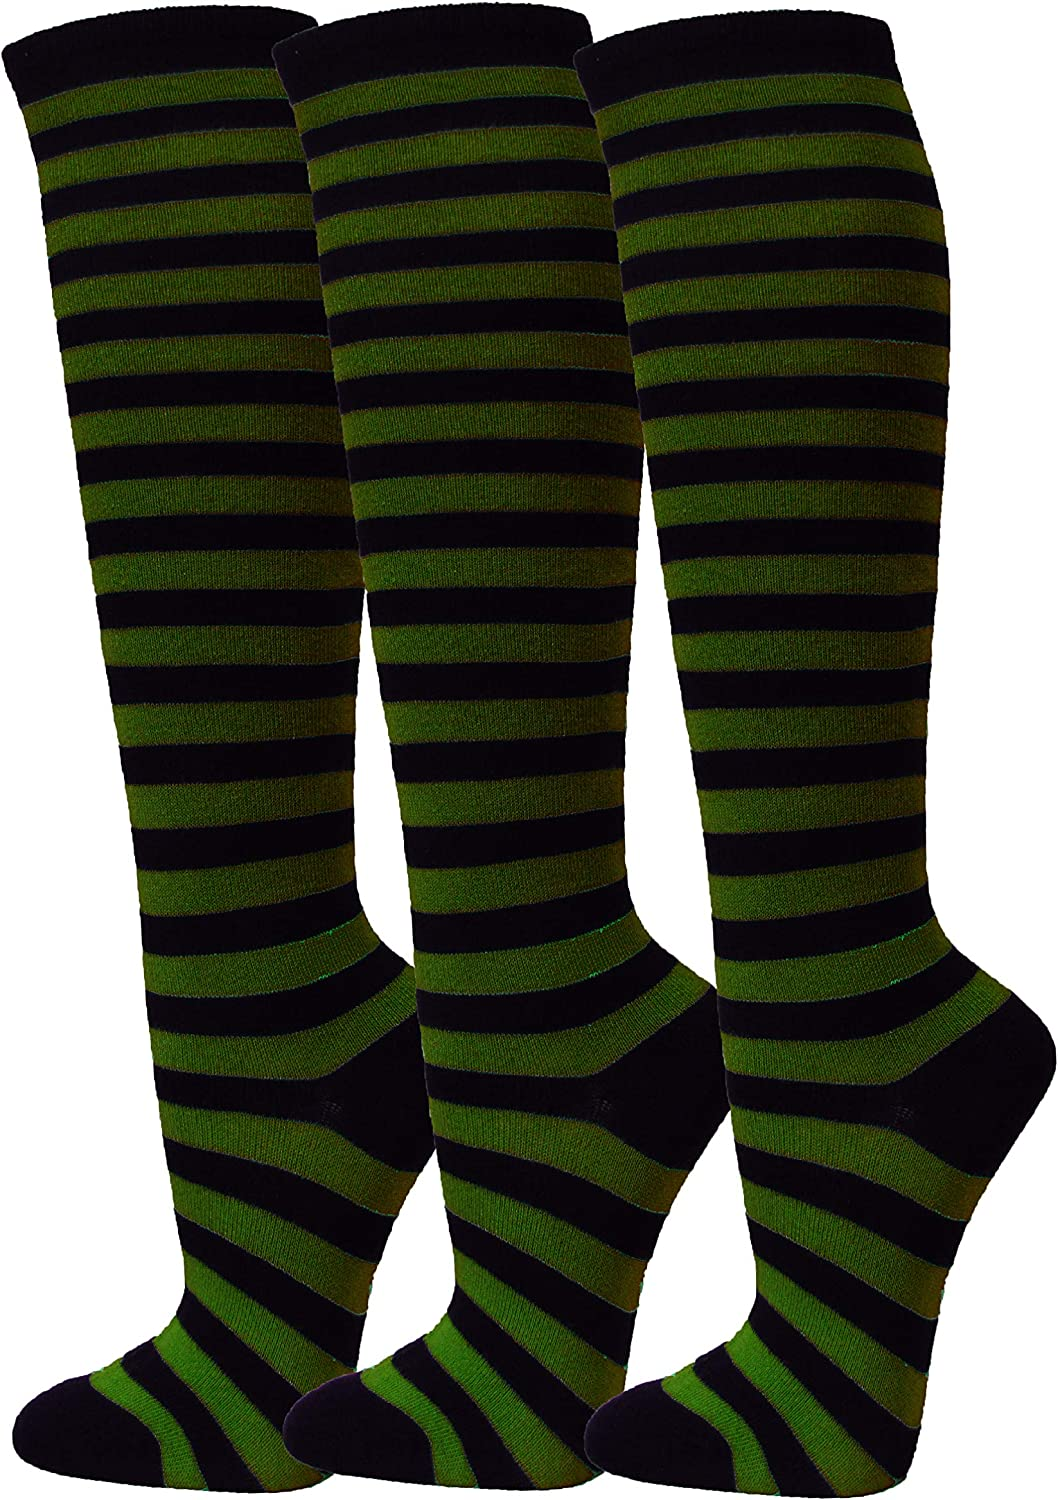 Couver Striped Women's Halloween costume Japan's largest assortment Special price for a limited time Knee High Tube Fashion